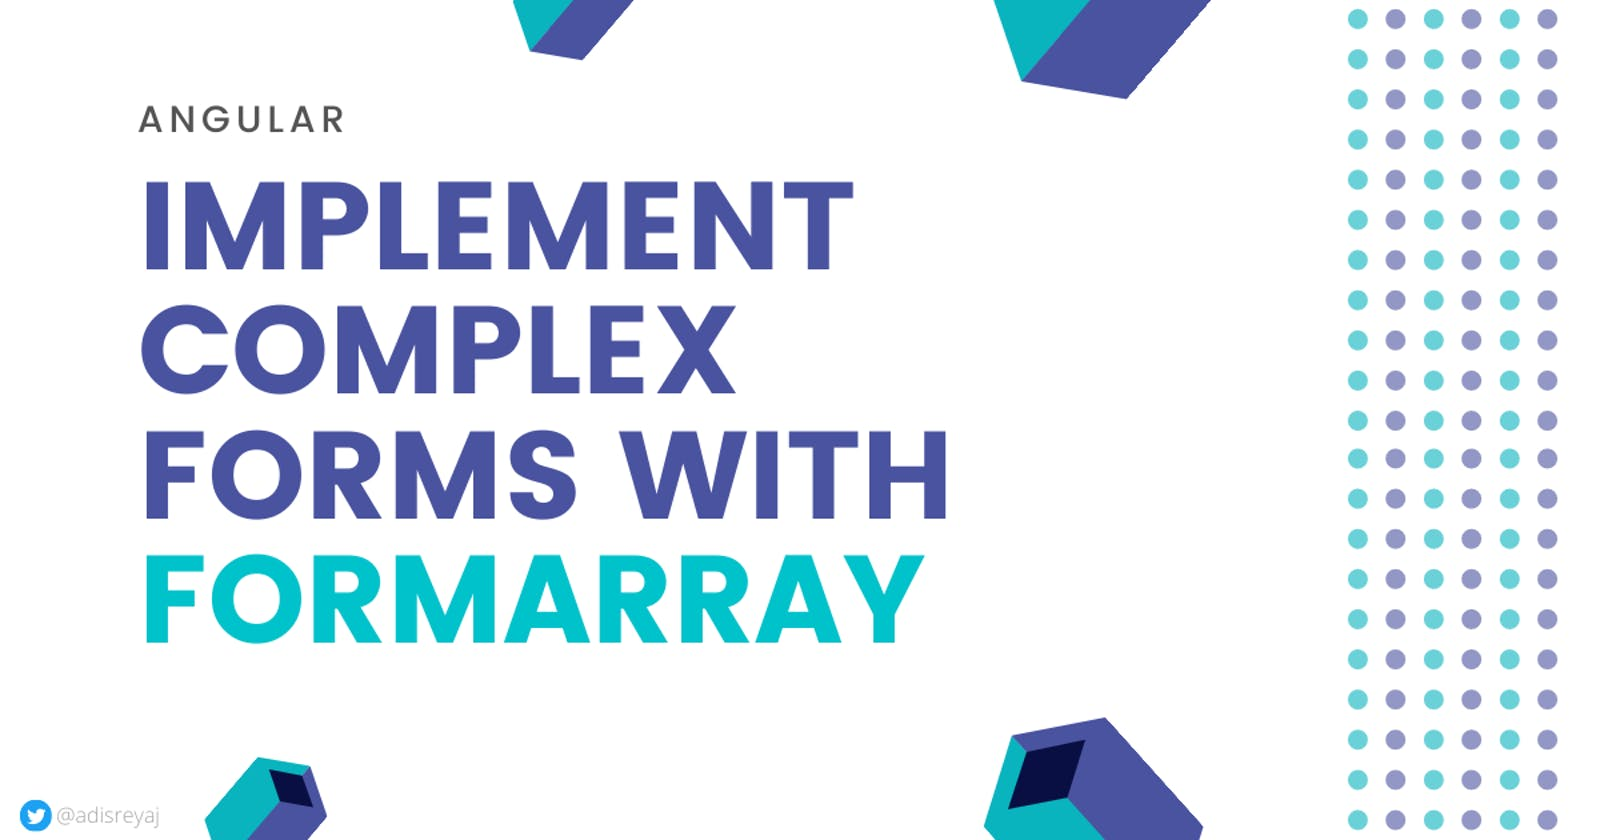 How to implement complex forms in Angular using FormArray